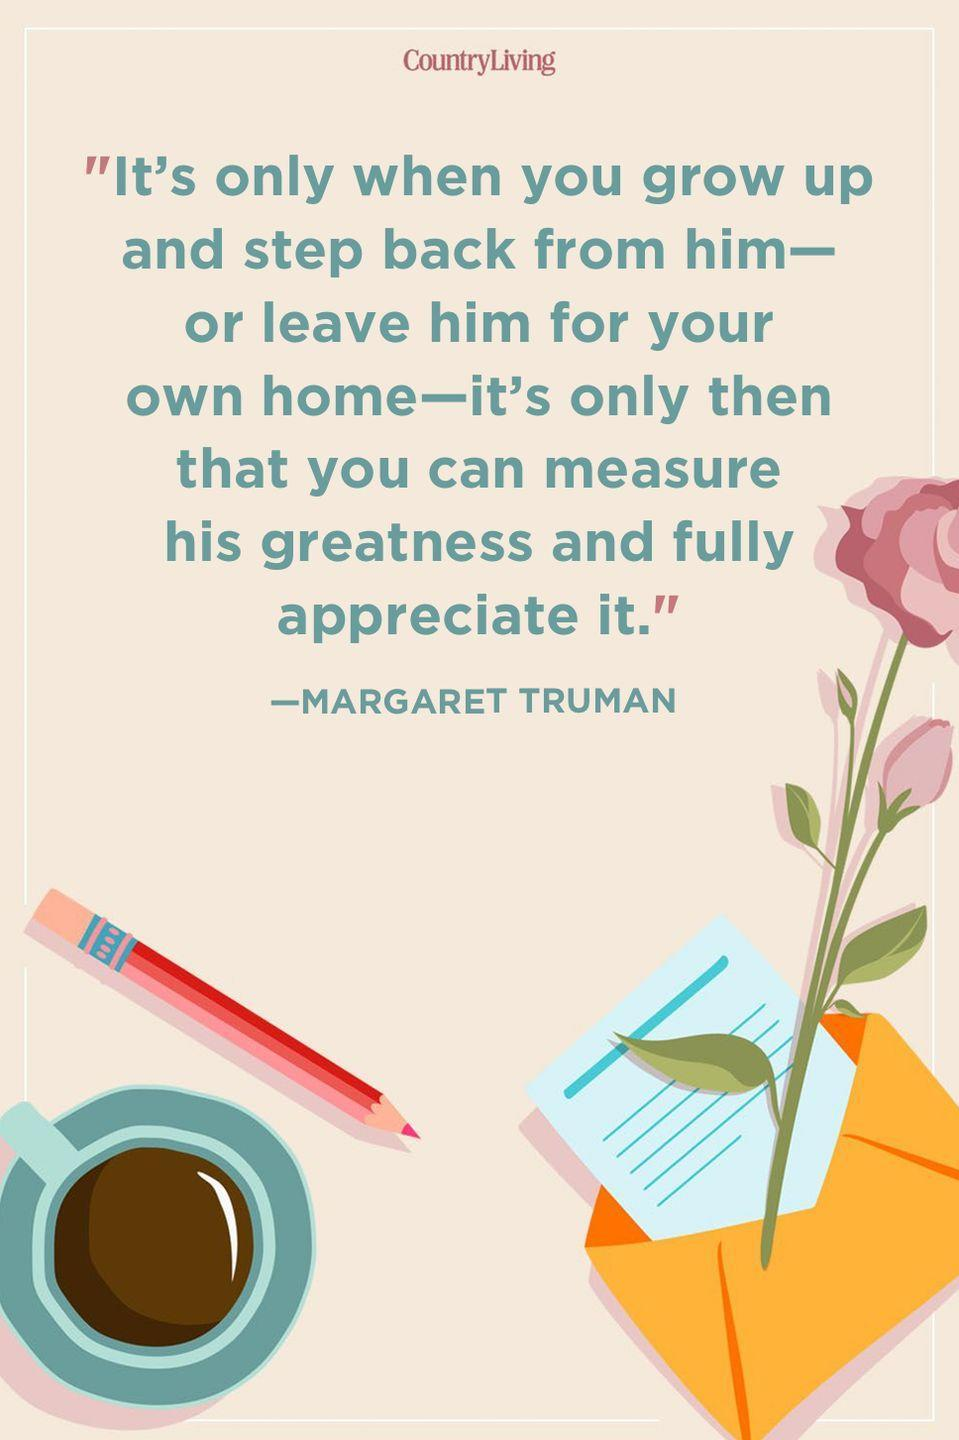 """<p>""""It's only when you grow up and step back from him—or leave him for your own home—it's only then that you can measure his greatness and fully appreciate it.""""</p>"""